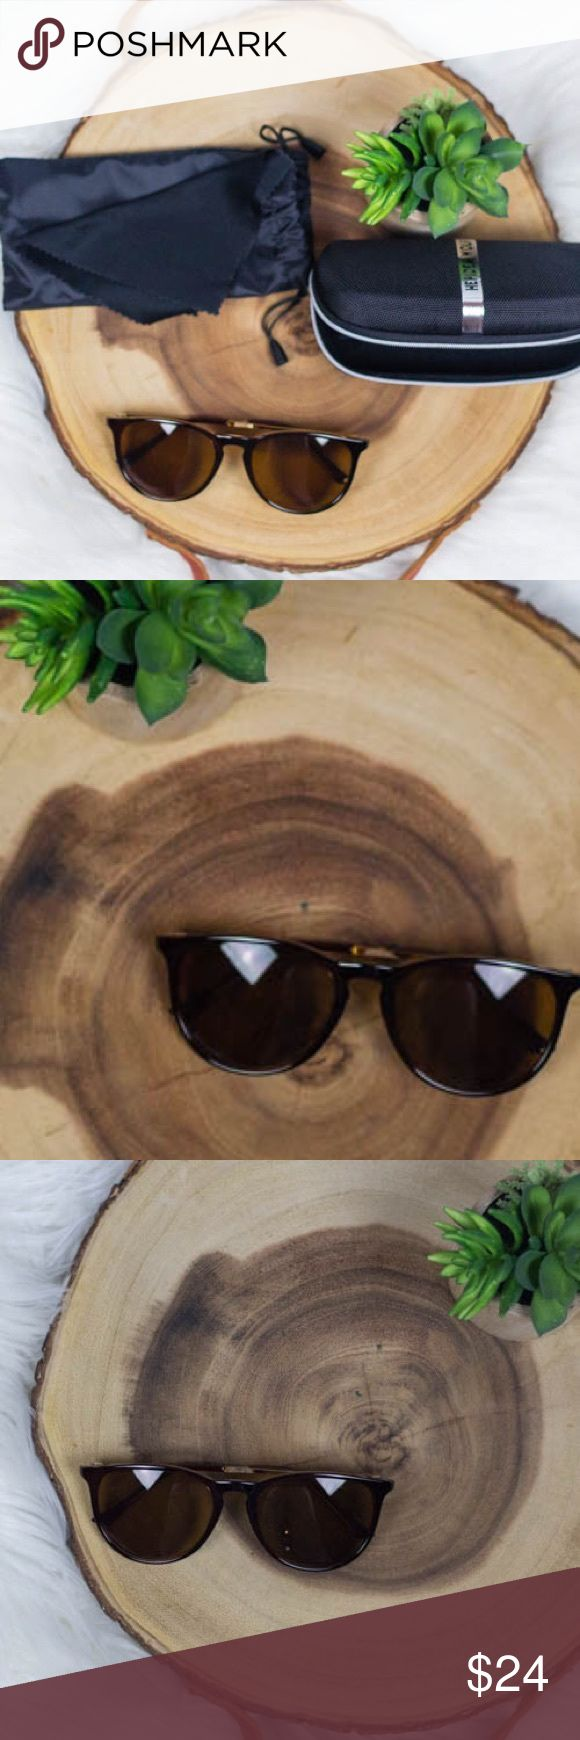 """Brown Erika style sunnies sunglasses 😎☀️ ERIKA style sunnies! ☀️   boutique brand! Retro style sunglasses. Each pair includes soft drawstring case, hard zipper case, and cleaning rag. Available in tortoise, matte black, and brown! Please see my other listings!   Width- 5.5""""  🚫trades 🚫lowball offers boutique Accessories Sunglasses"""